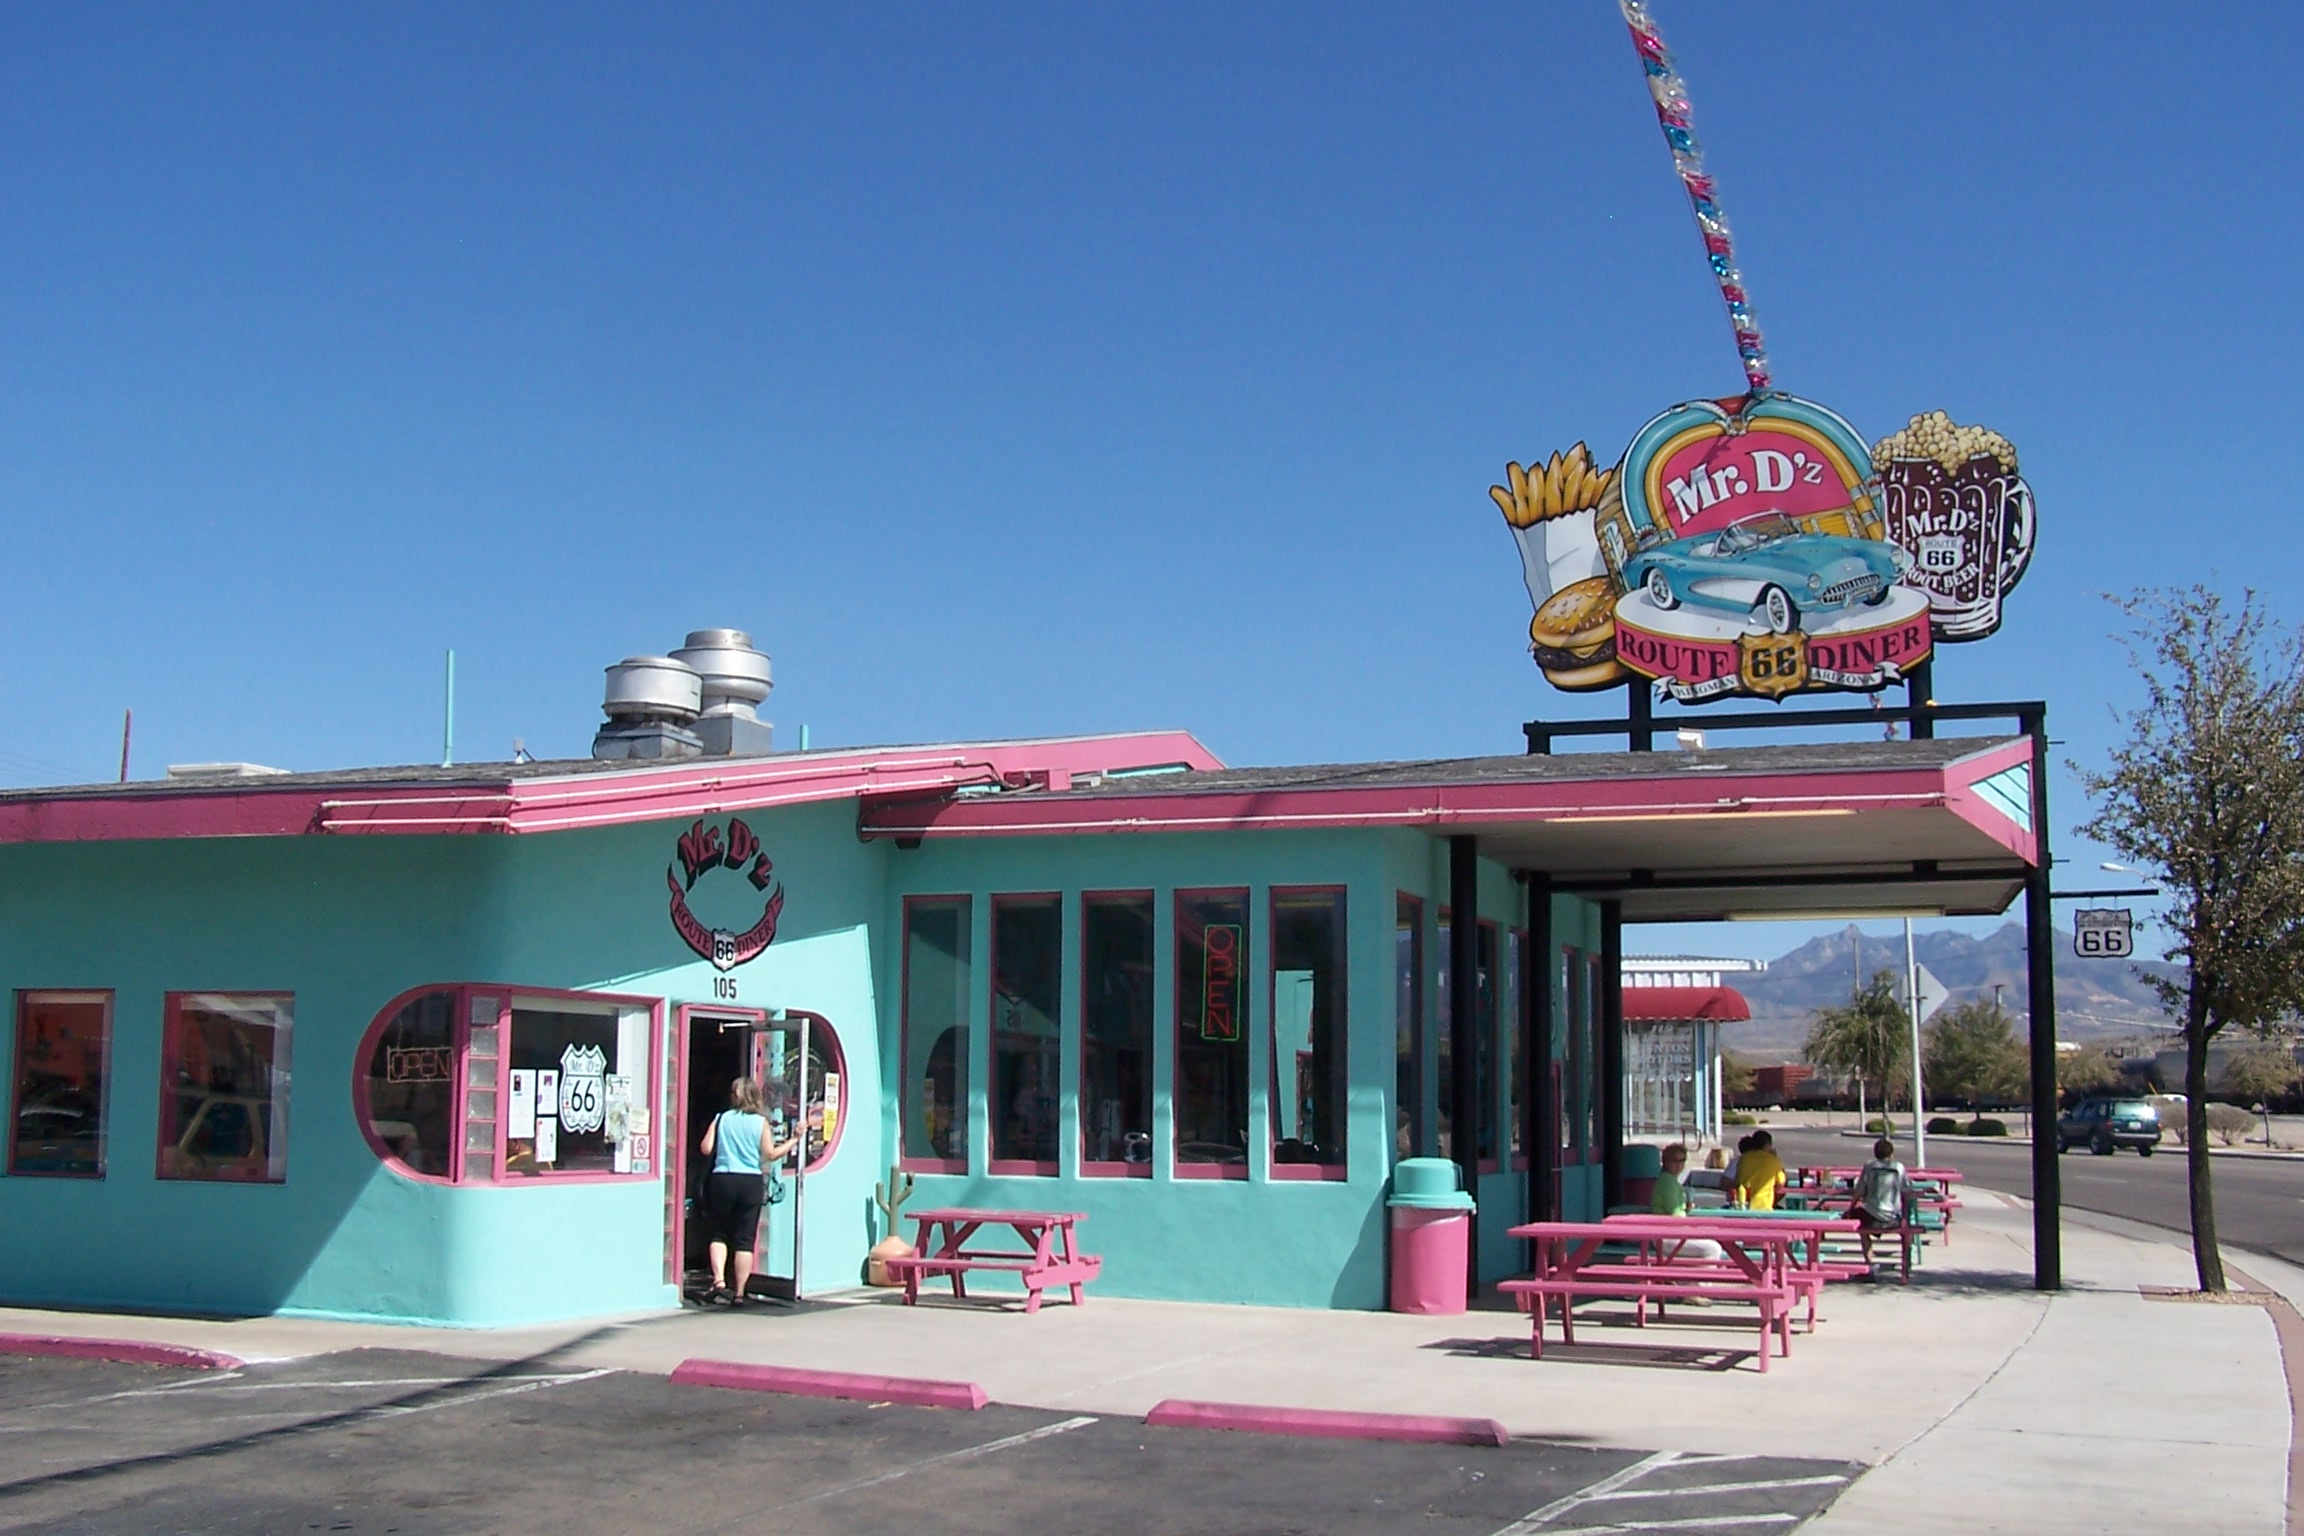 Ece O Route 66 Diner